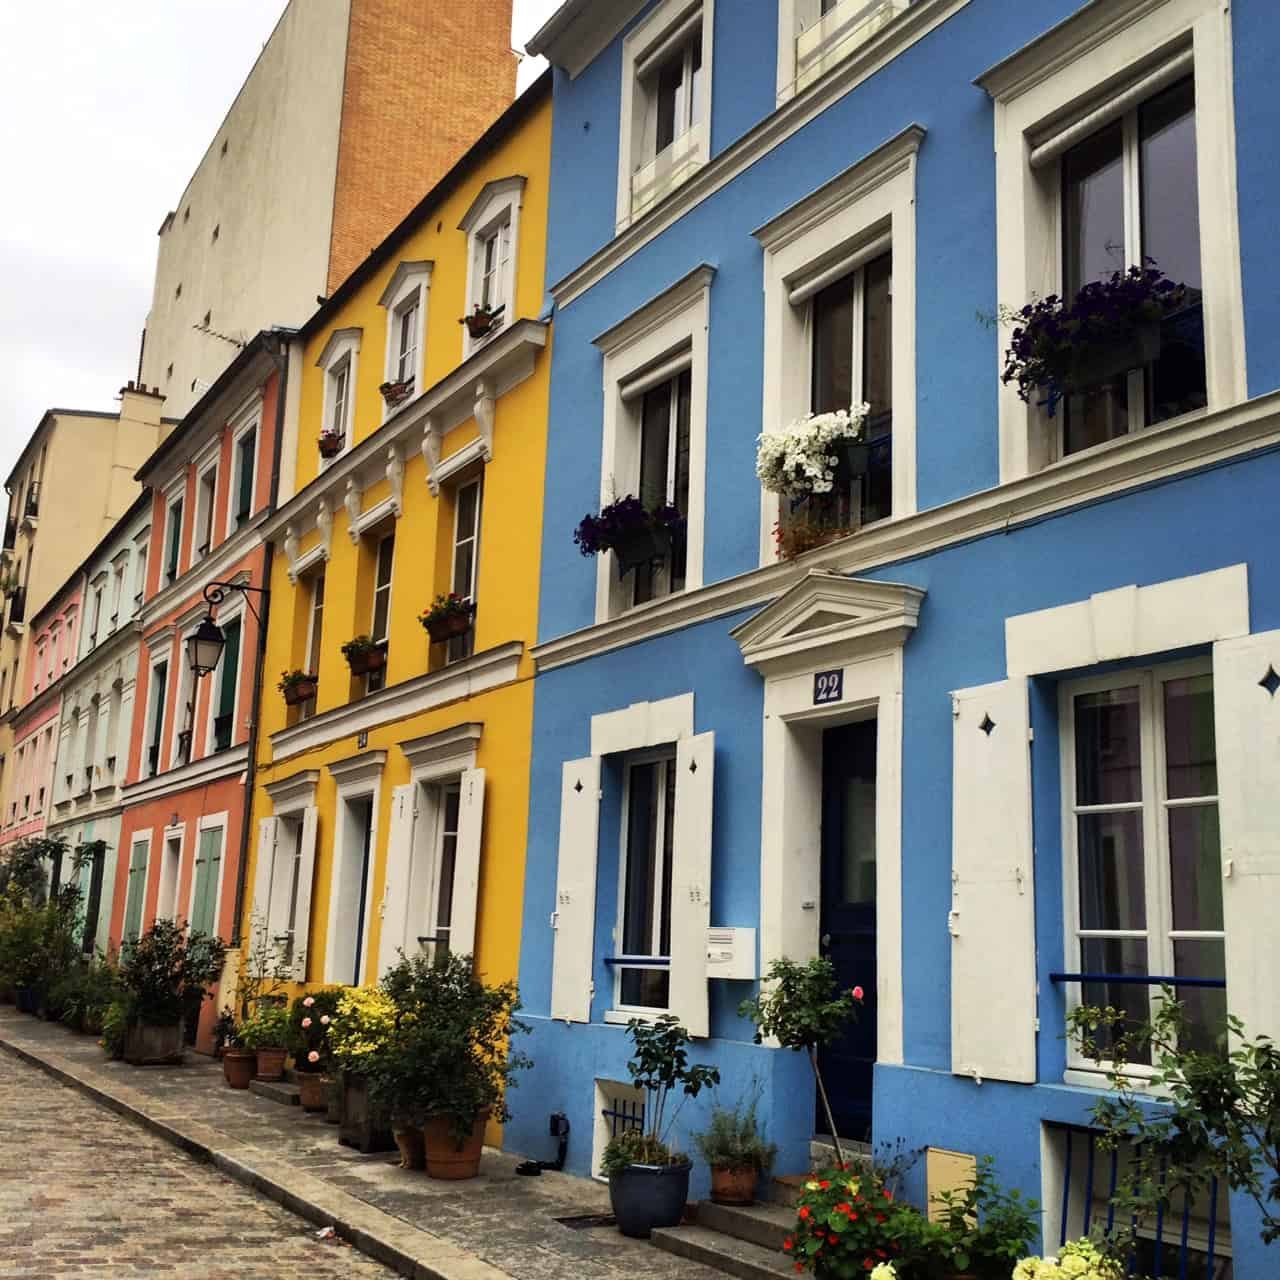 rue cremieux paris houses